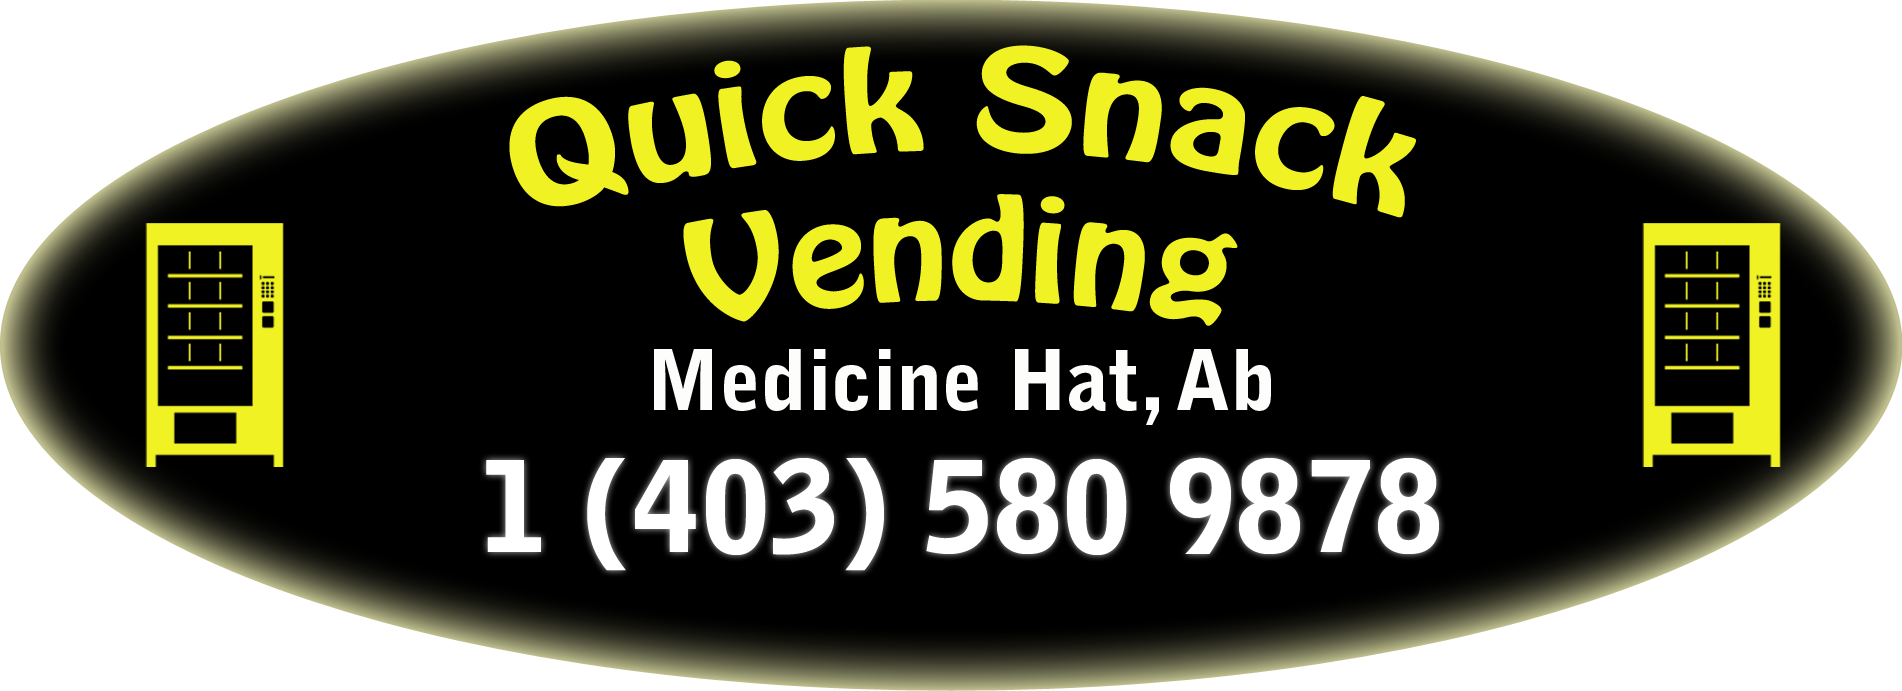 Quick Snack Vending